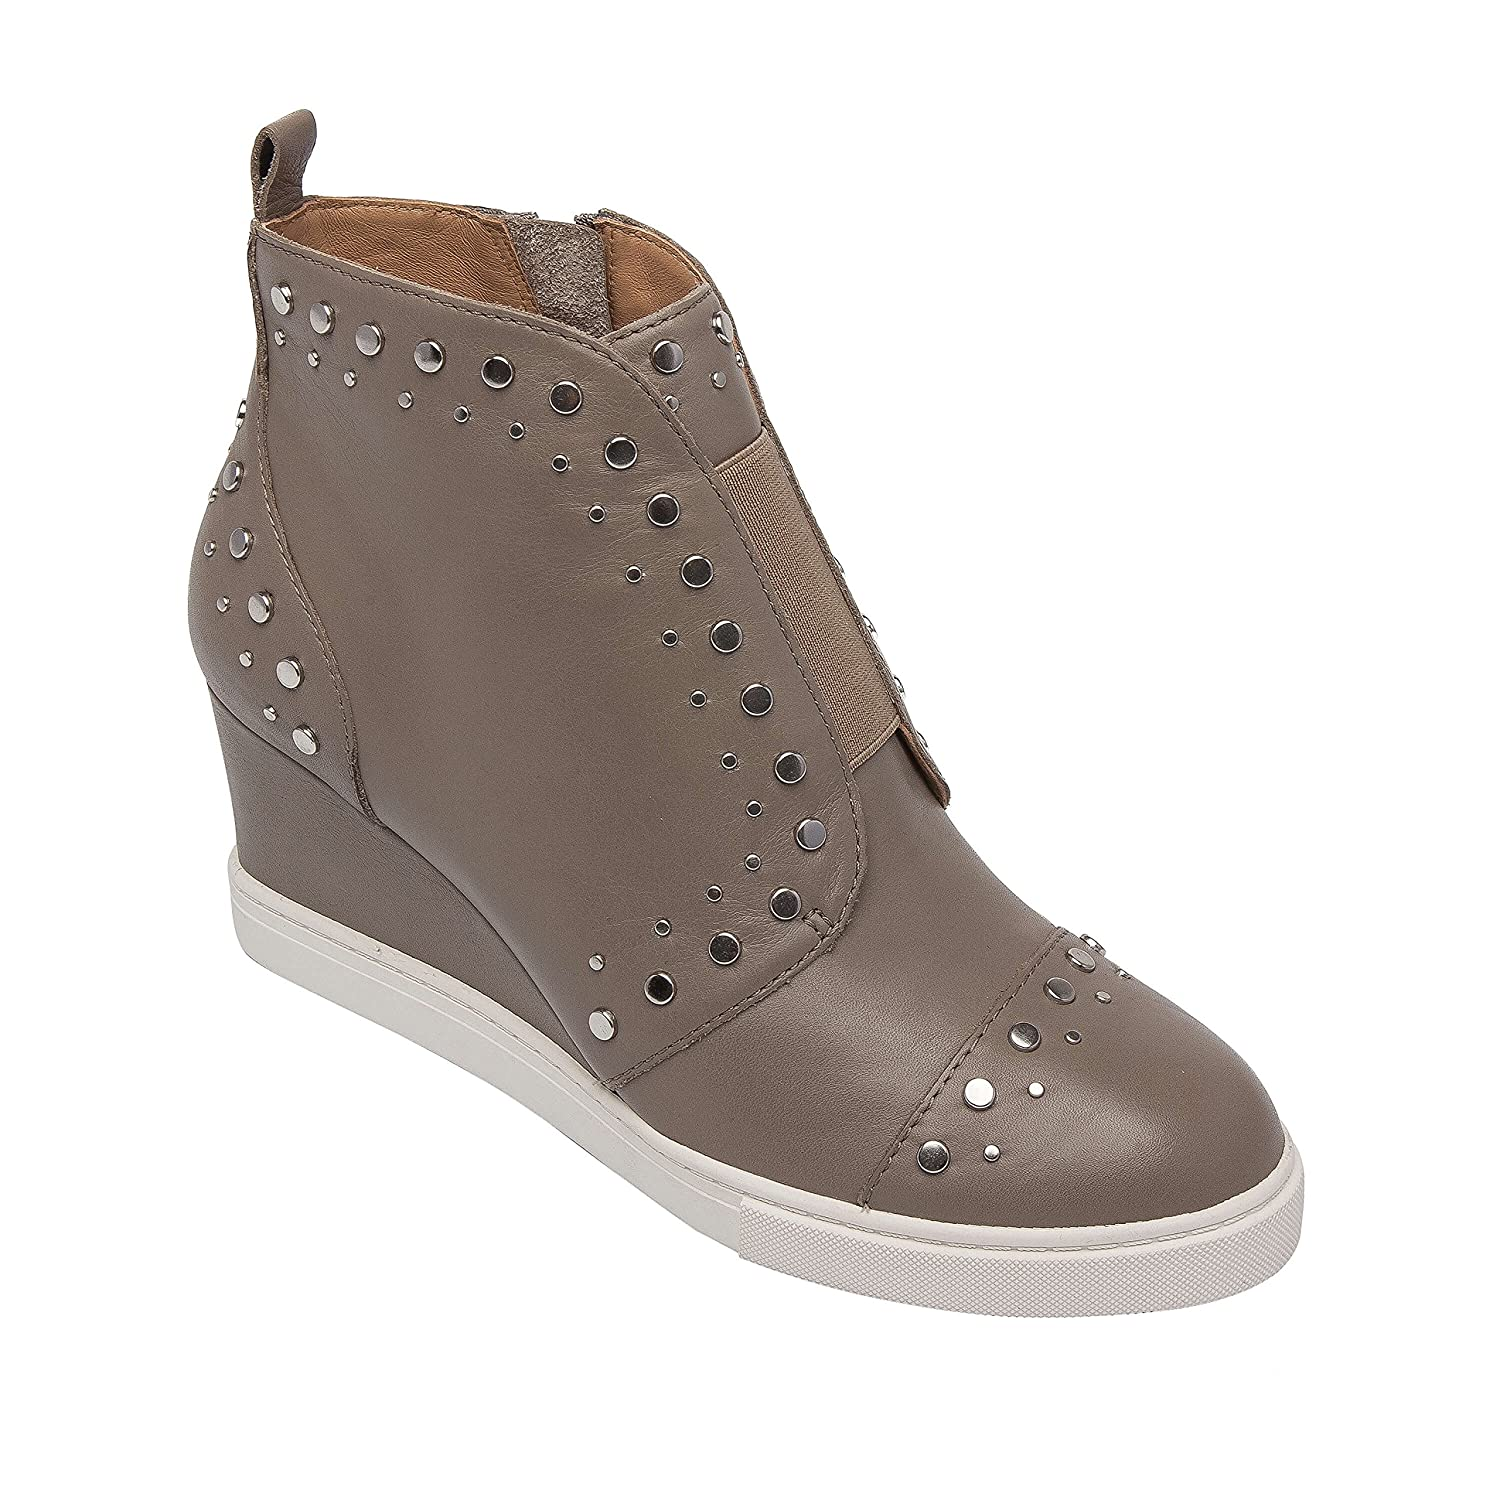 Felicity | Micro Stud Embellished Leather Fashion Wedge Sneaker Bootie B07C8MZVVW 6.5 M US|Grey Leather